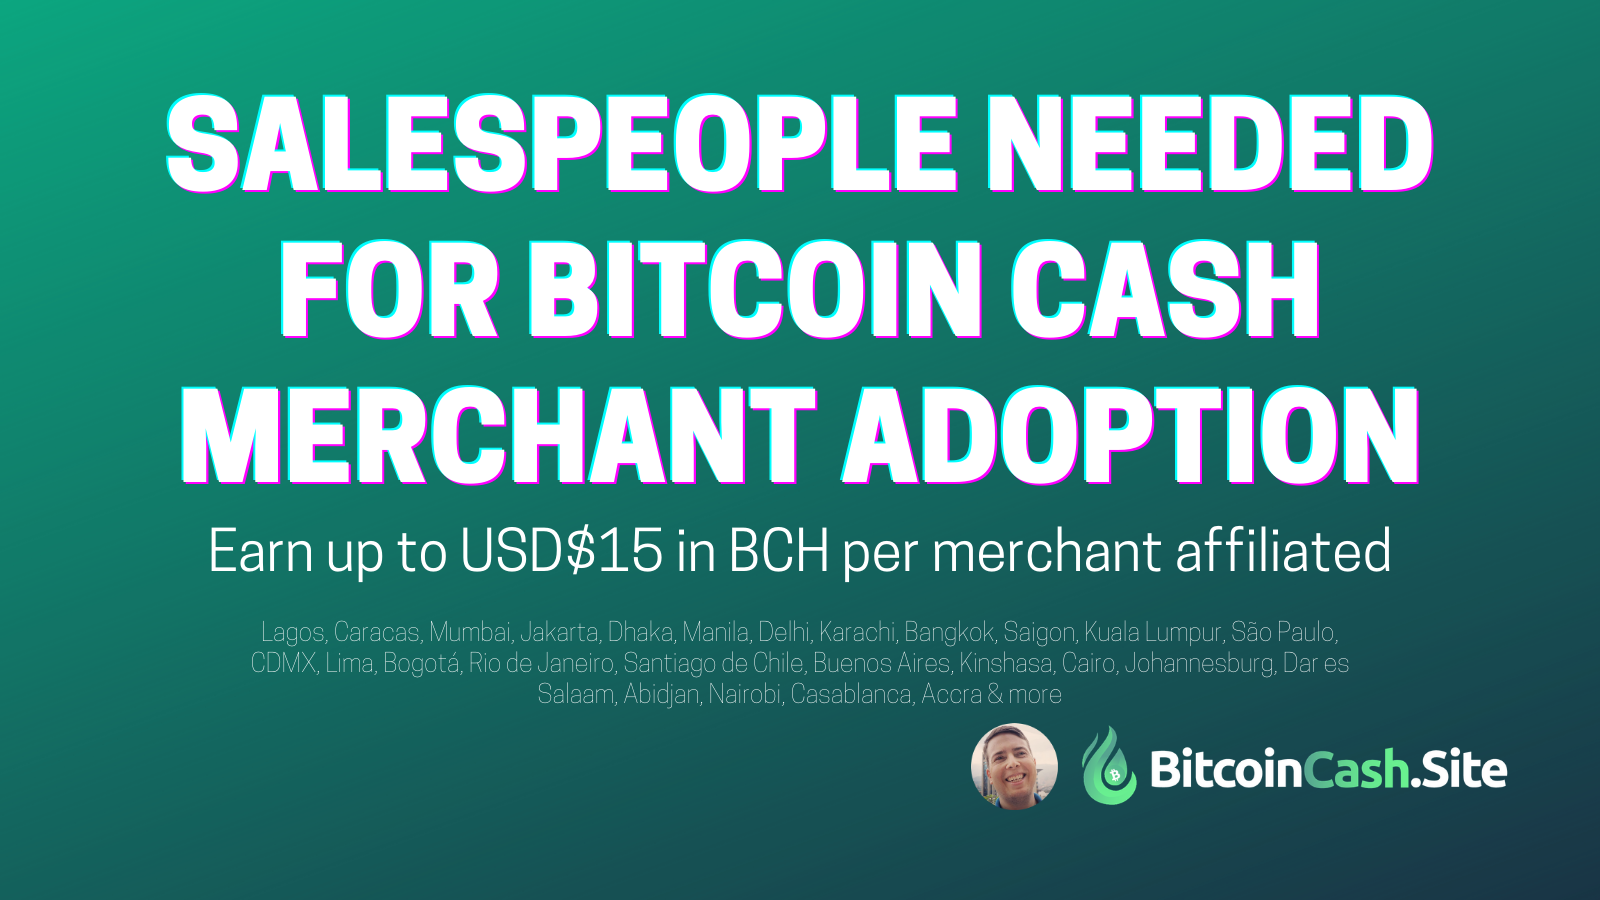 Bitcoin Cash Salespeople wanted in dozens of cities